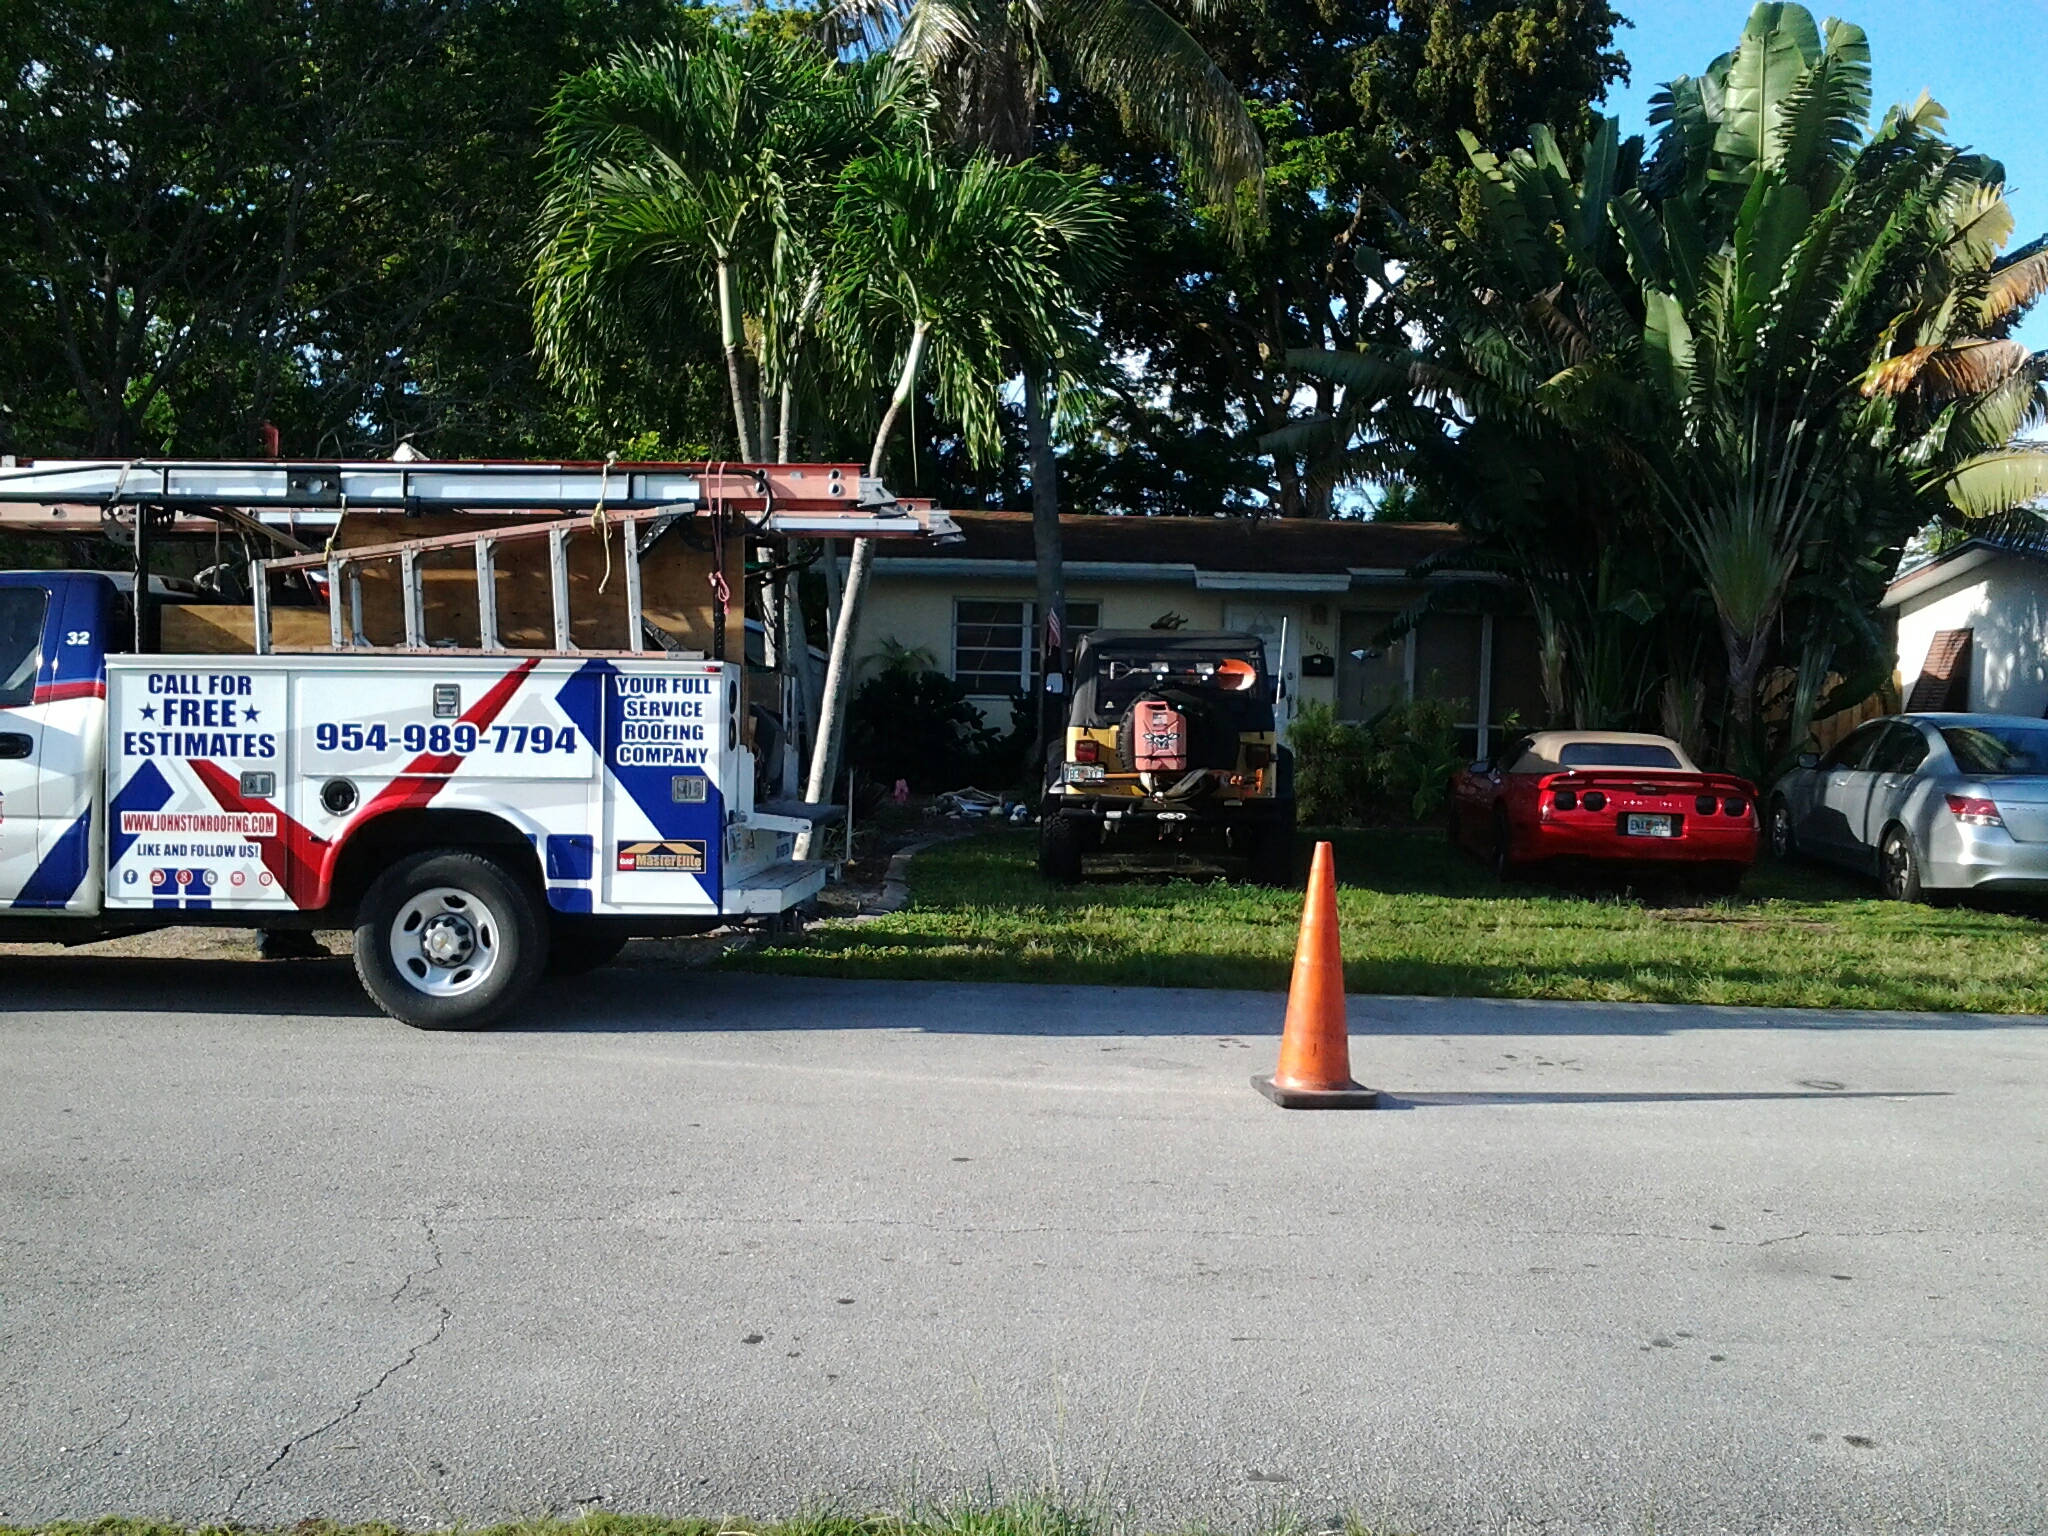 Tile roof repair in the city of fort Lauderdale fl this repair is being done by Earl w Johnston roofing company Jos? end Duane are you repair technicians